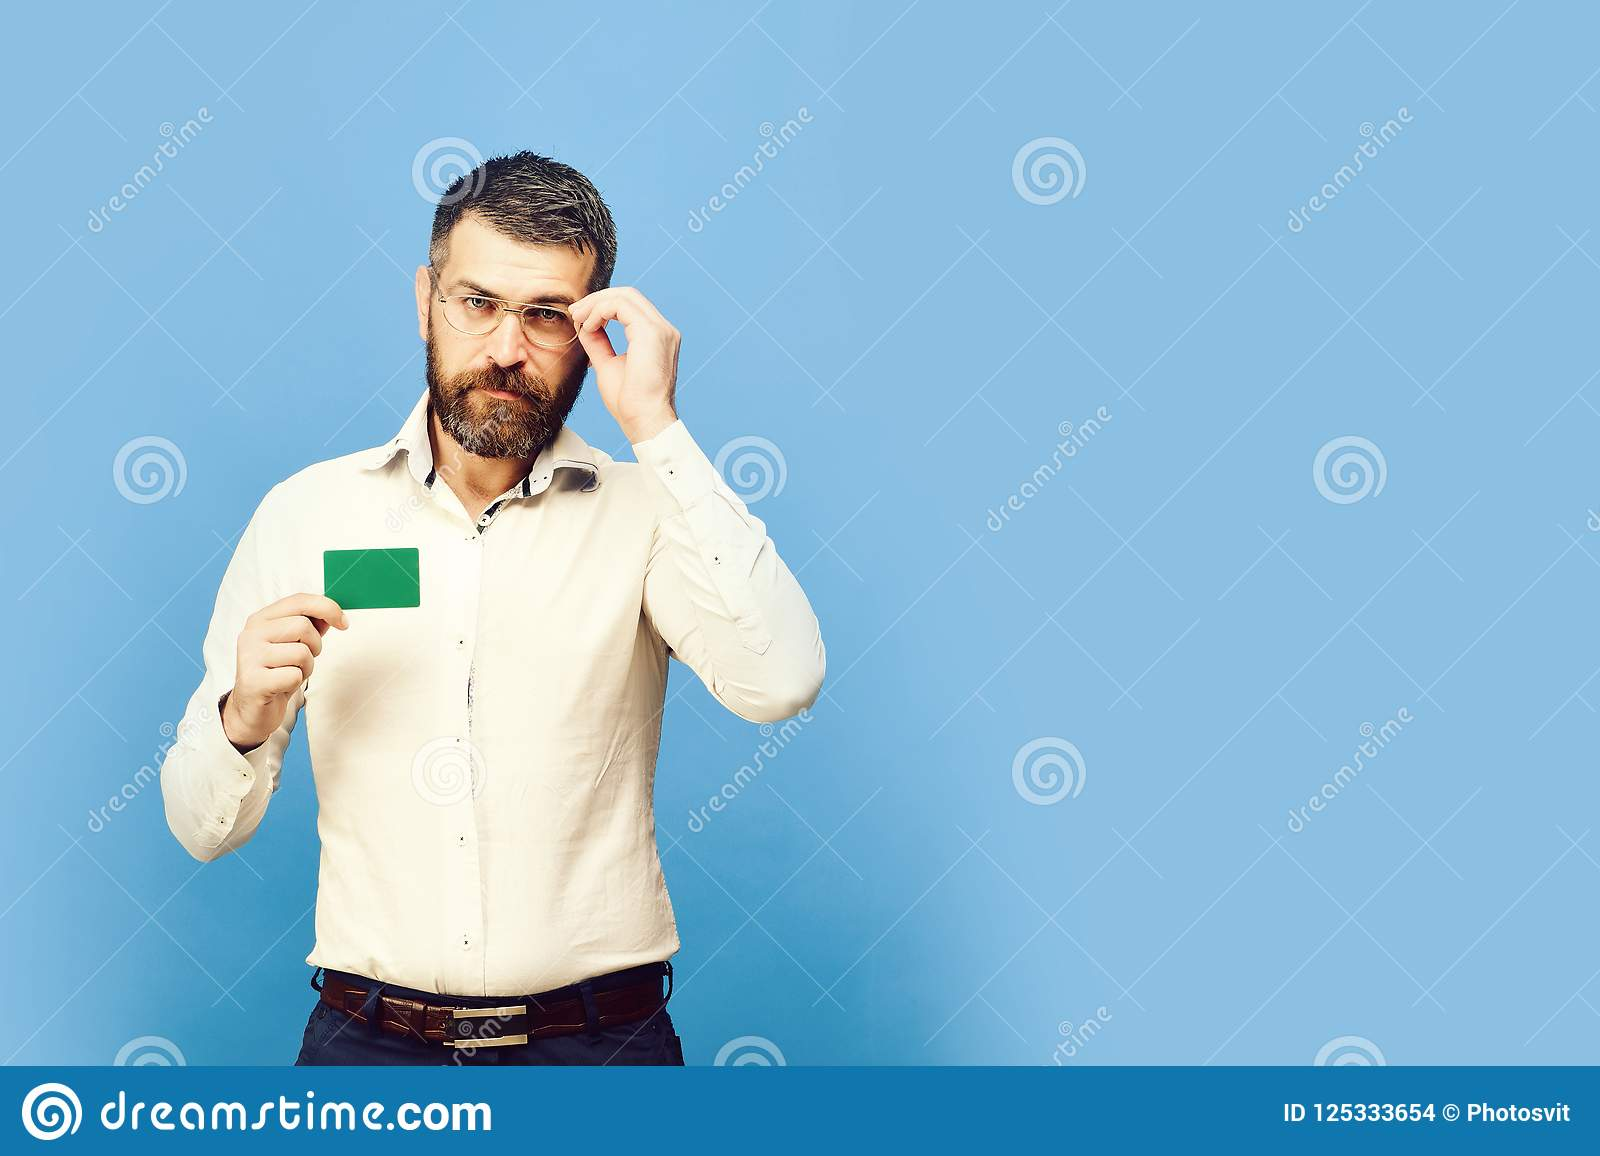 Man with beard in white shirt holds green business card. Guy with smart face with glasses isolated on blue background